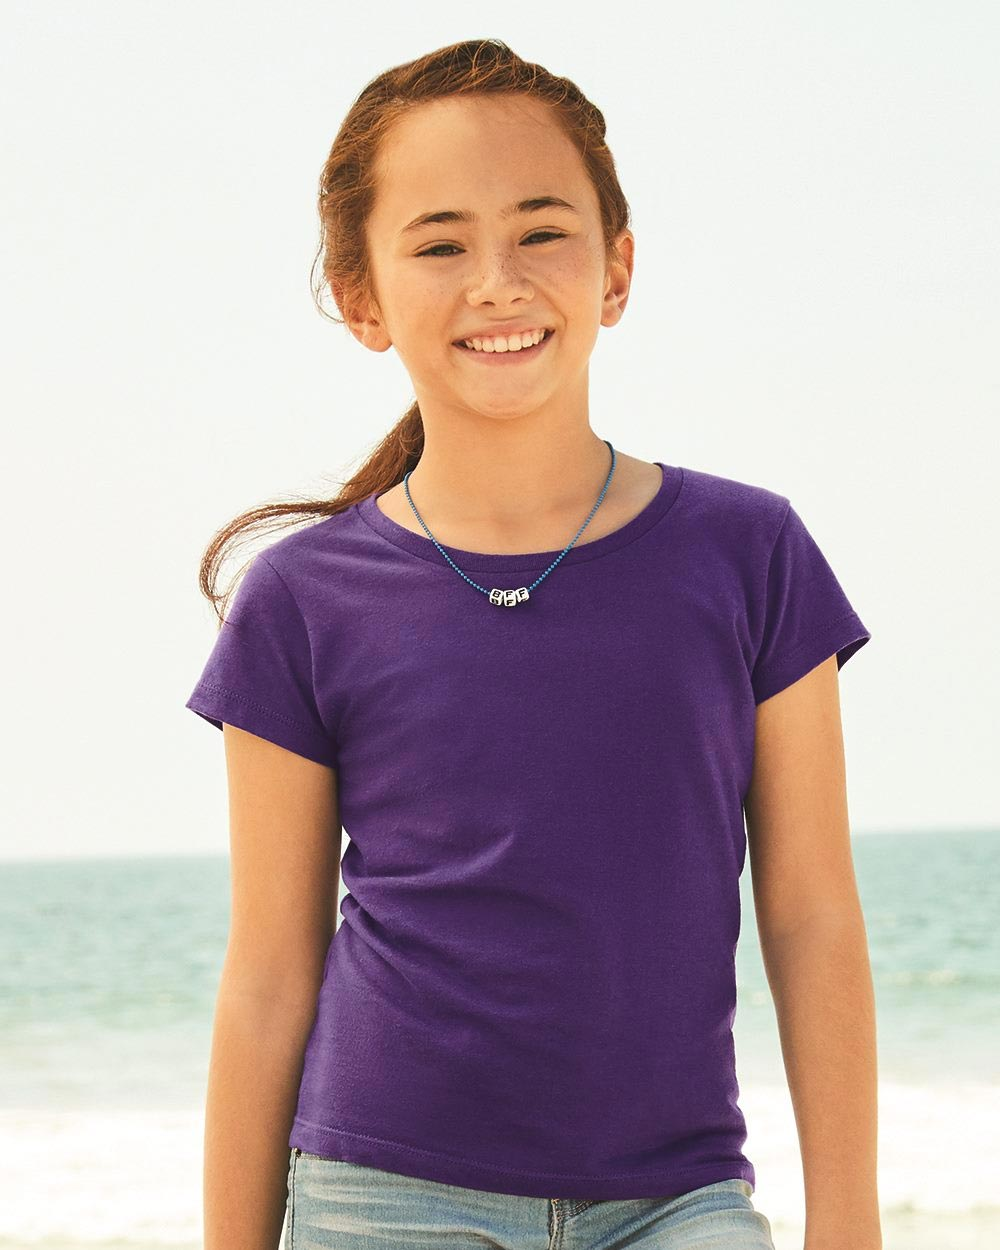 Alstyle 3362 - Girls' Ultimate T-Shirt